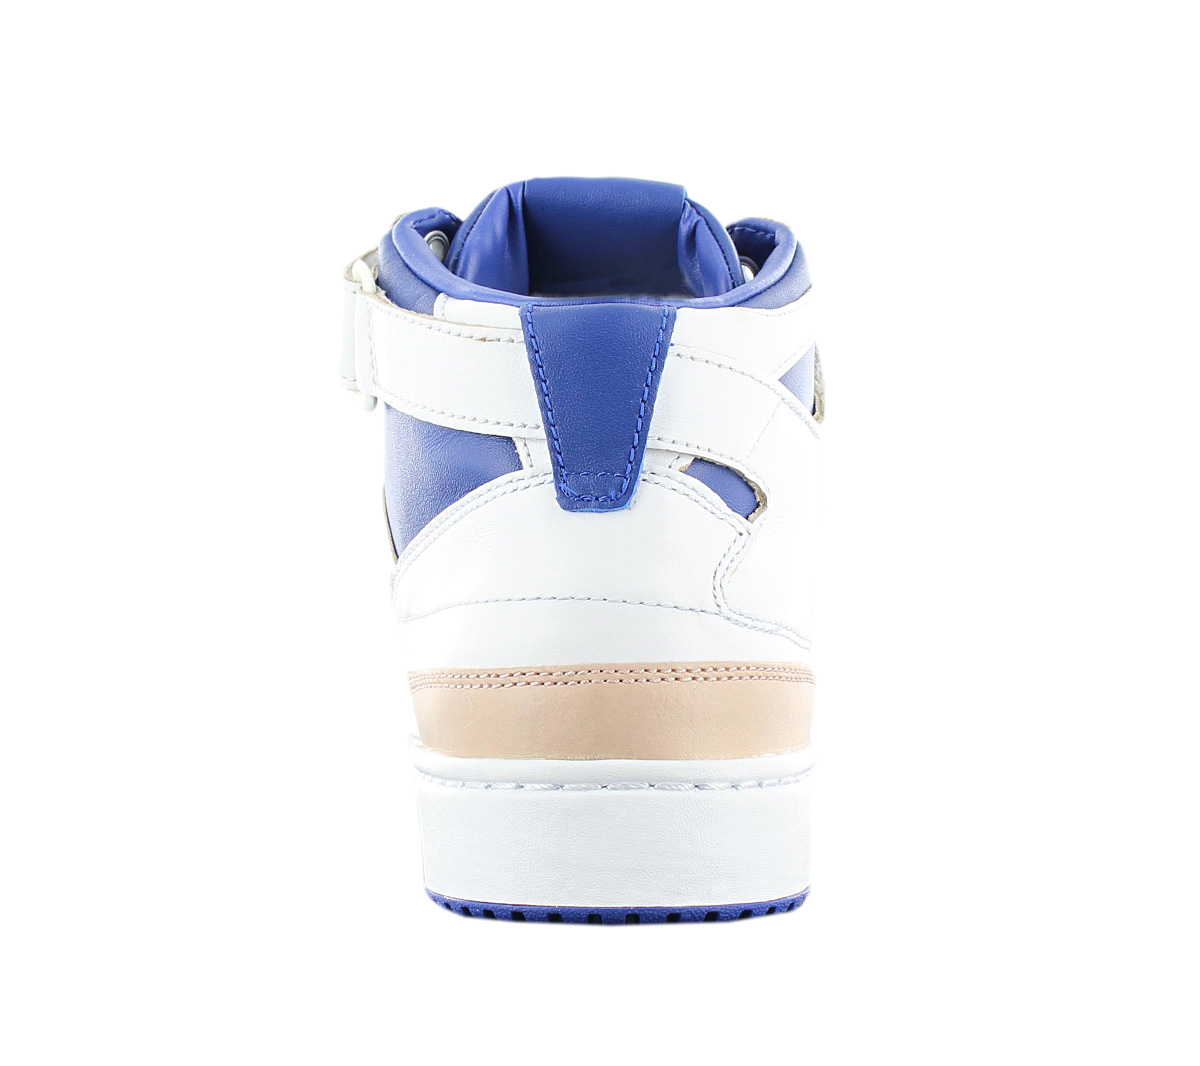 finest selection f62f4 4fd65 Adidas Originals Forum mid (Wrap) Bounce Men s Sneakers Shoes BY4412 ...